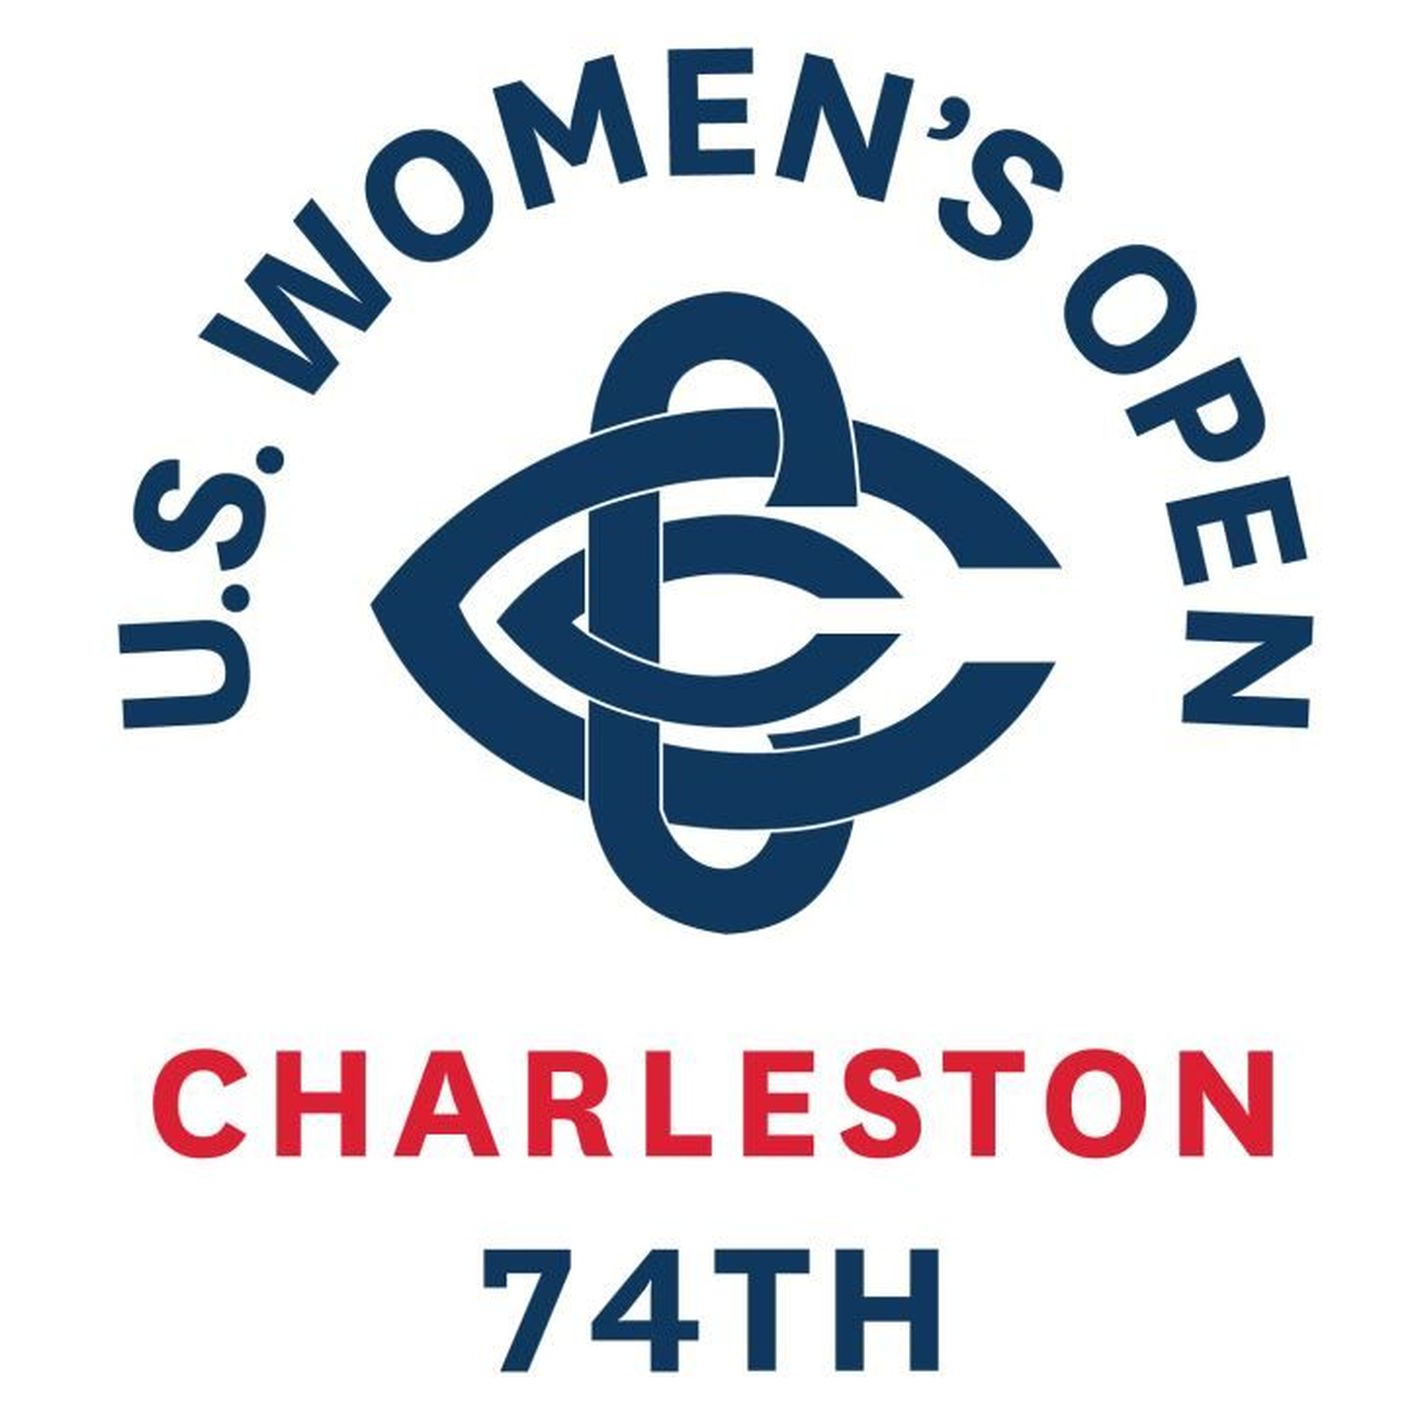 2019 Golf Women's Major Championships - US Women's Open